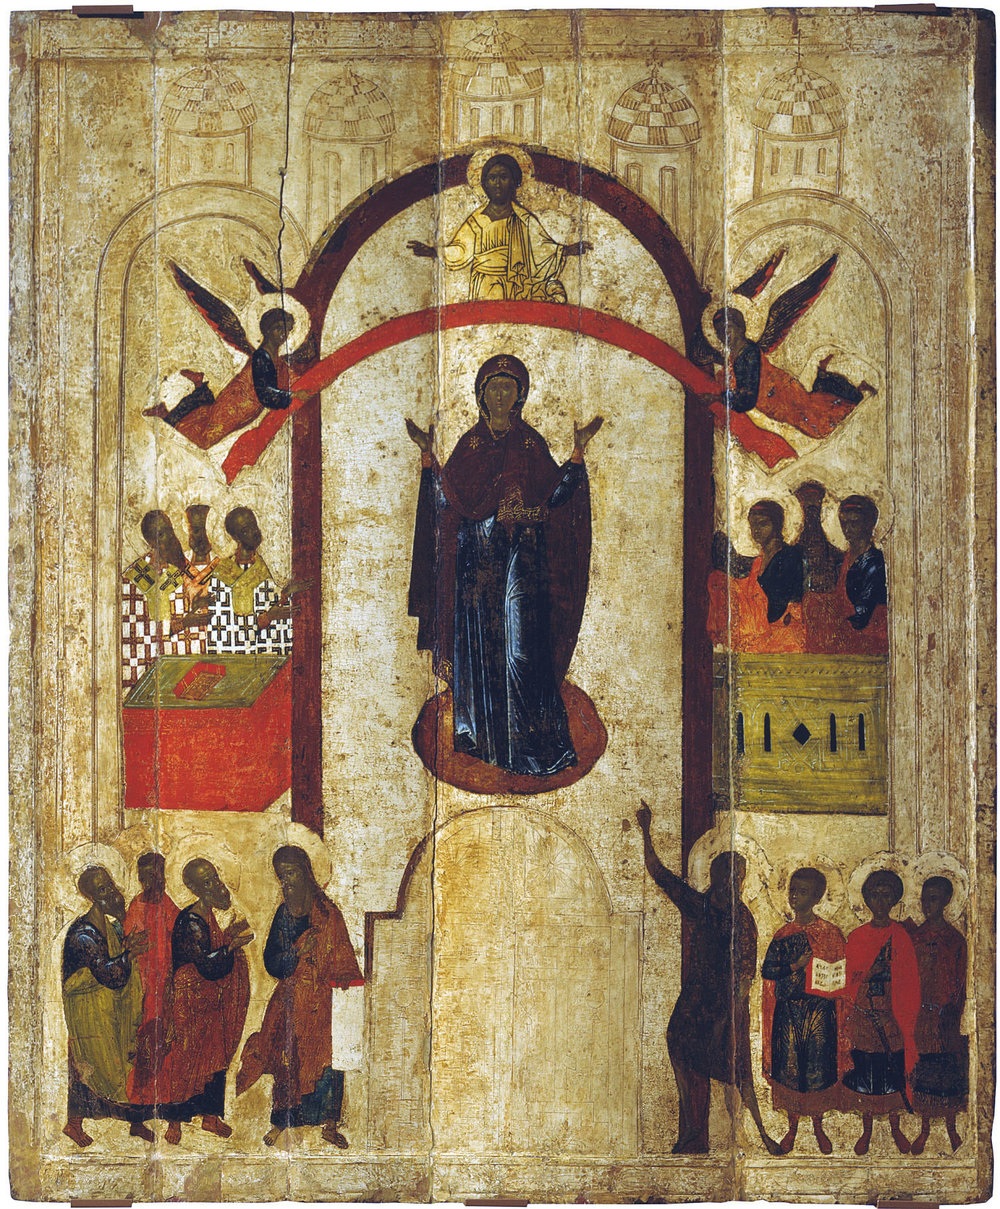 The Pokrov (Protection of the Mother of God) icon, Novgorod, 1399